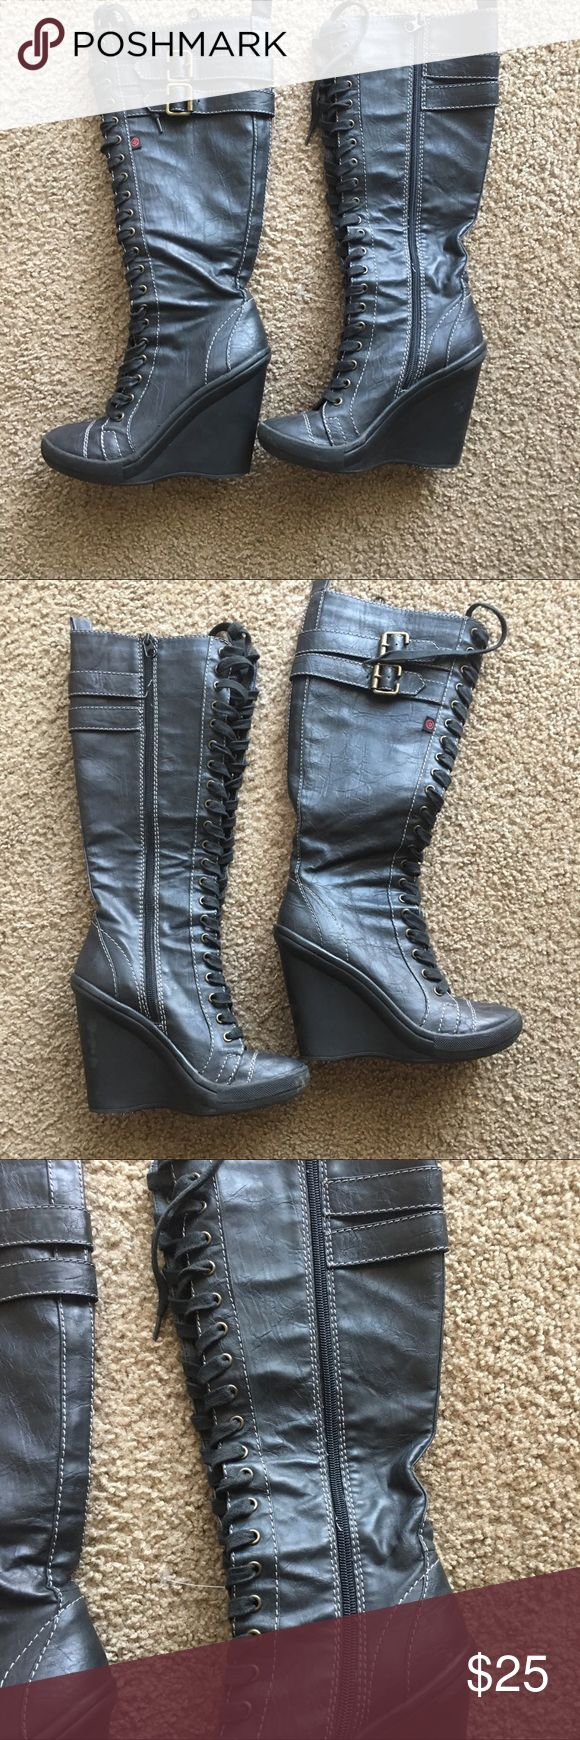 Big Buddha dark zip up Biker wedge boots These are either very dark charcoal grey or a lighter shade of black. These are not dark solid black. Size 7.5M . Light scuffs shown in pictures Big Buddha Shoes Wedges